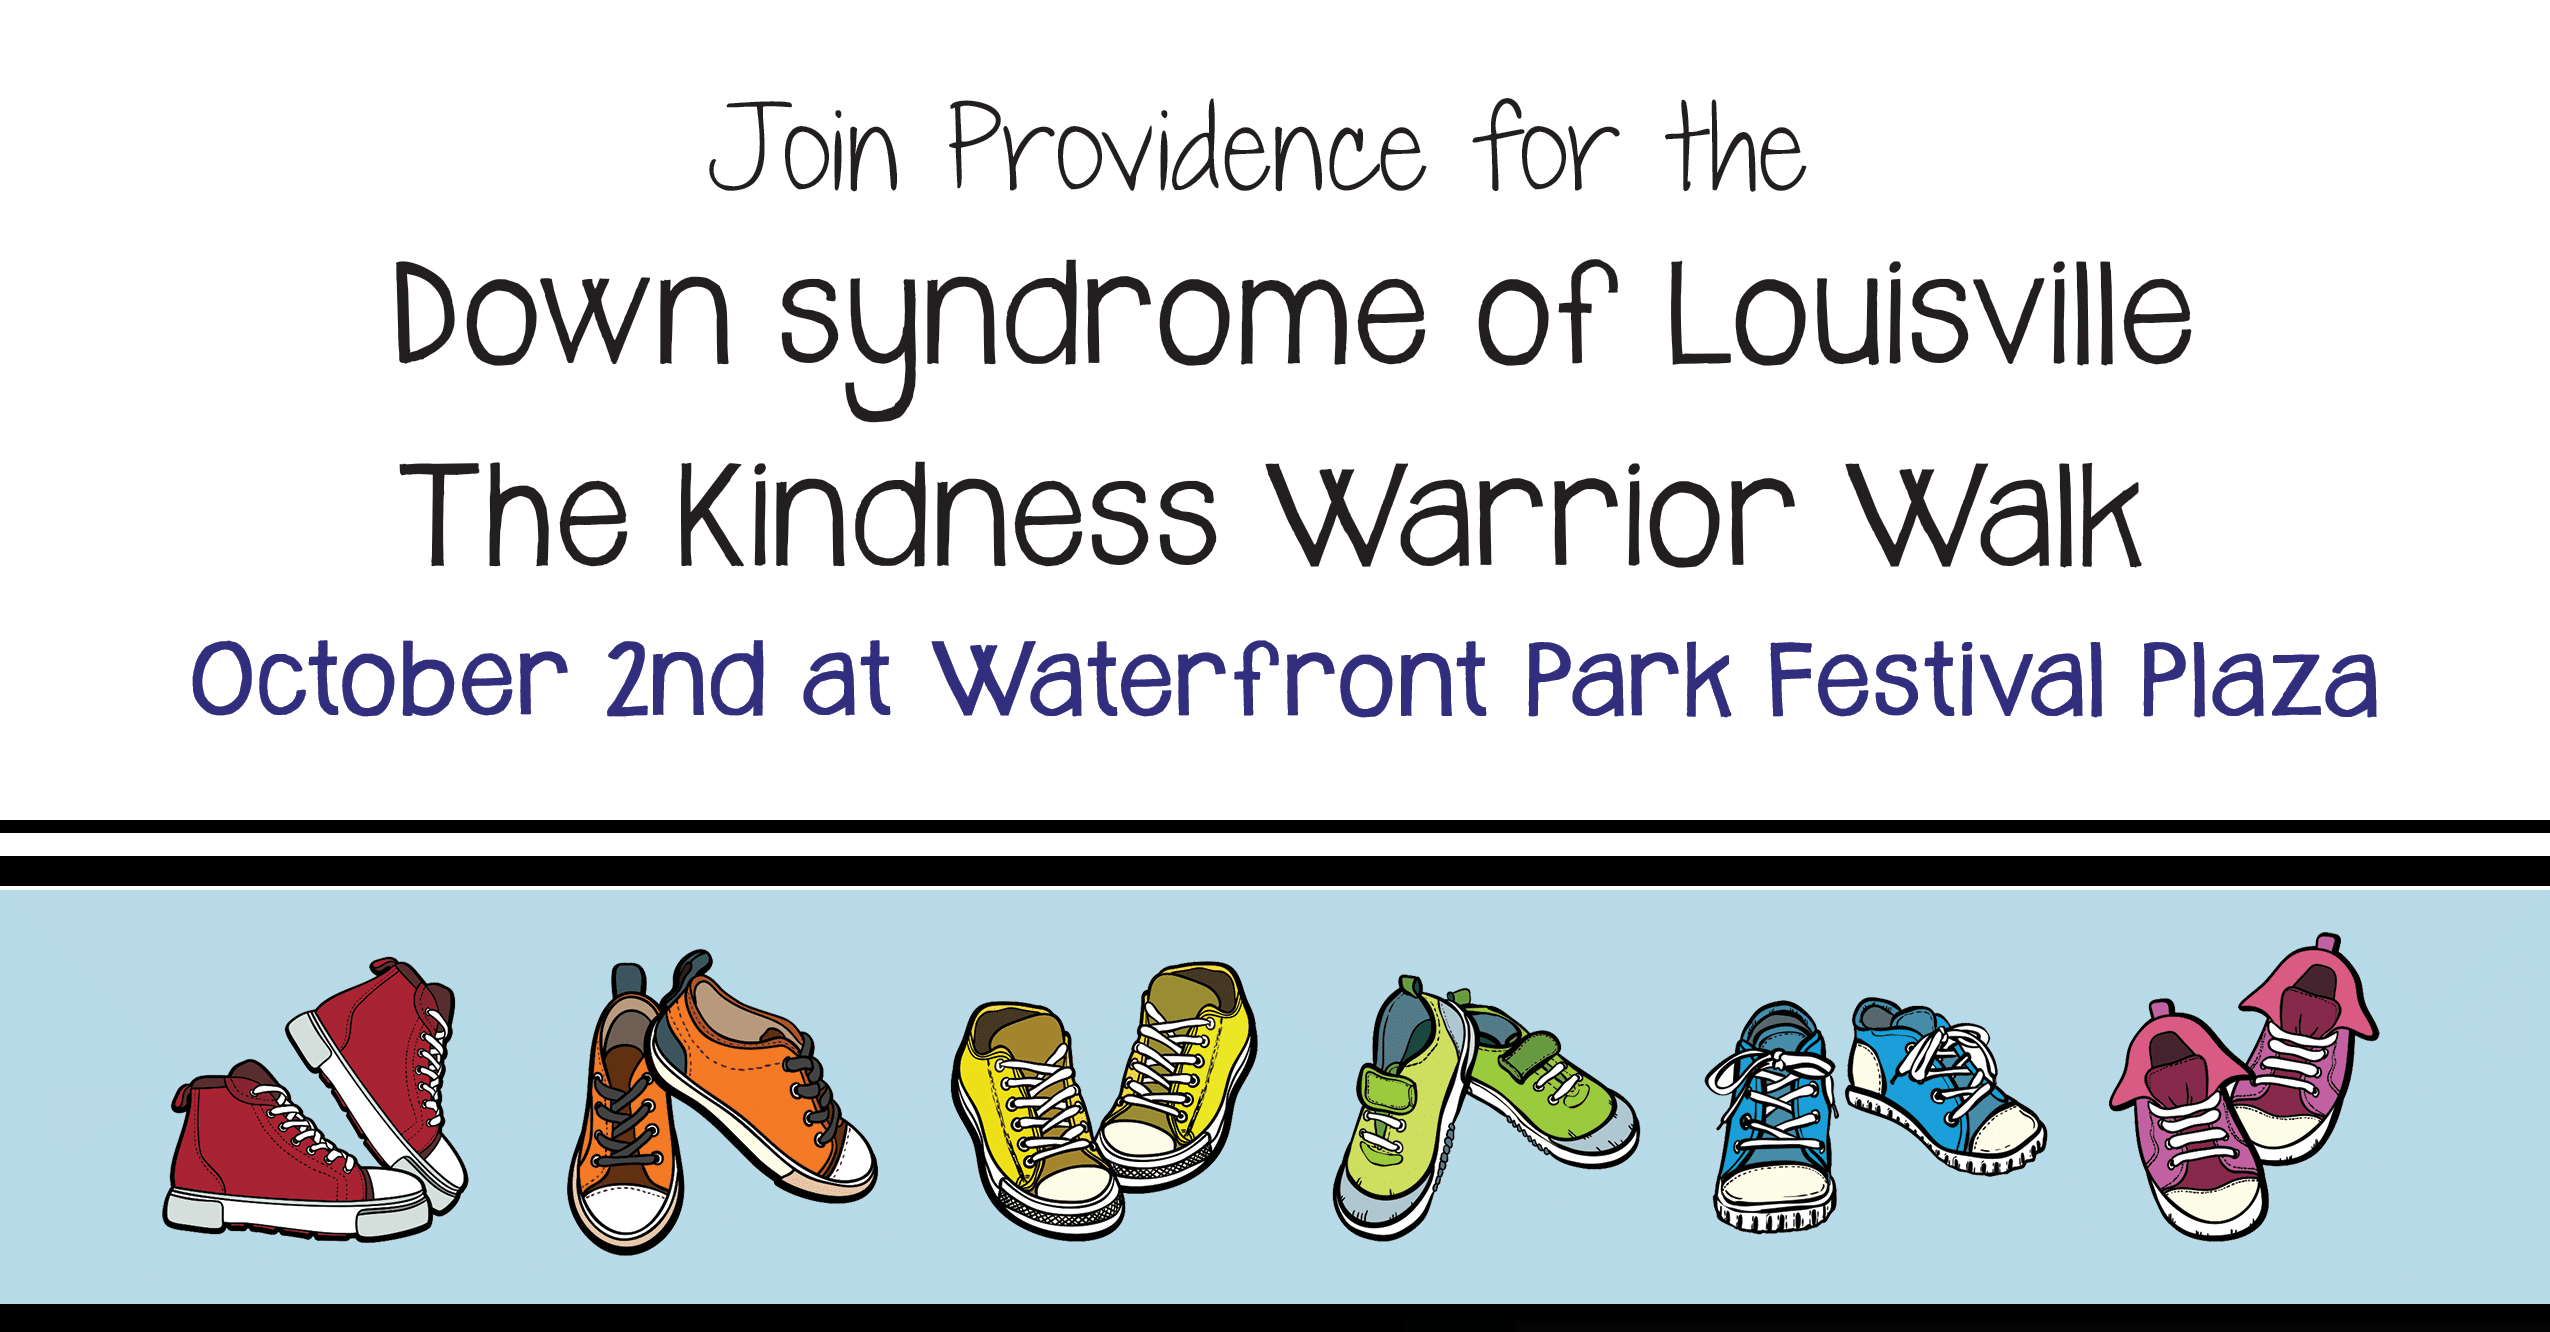 Christian Academy School System | Providence School | Down Syndrome of Louisville | The Kindness Warrior Walk | October 2